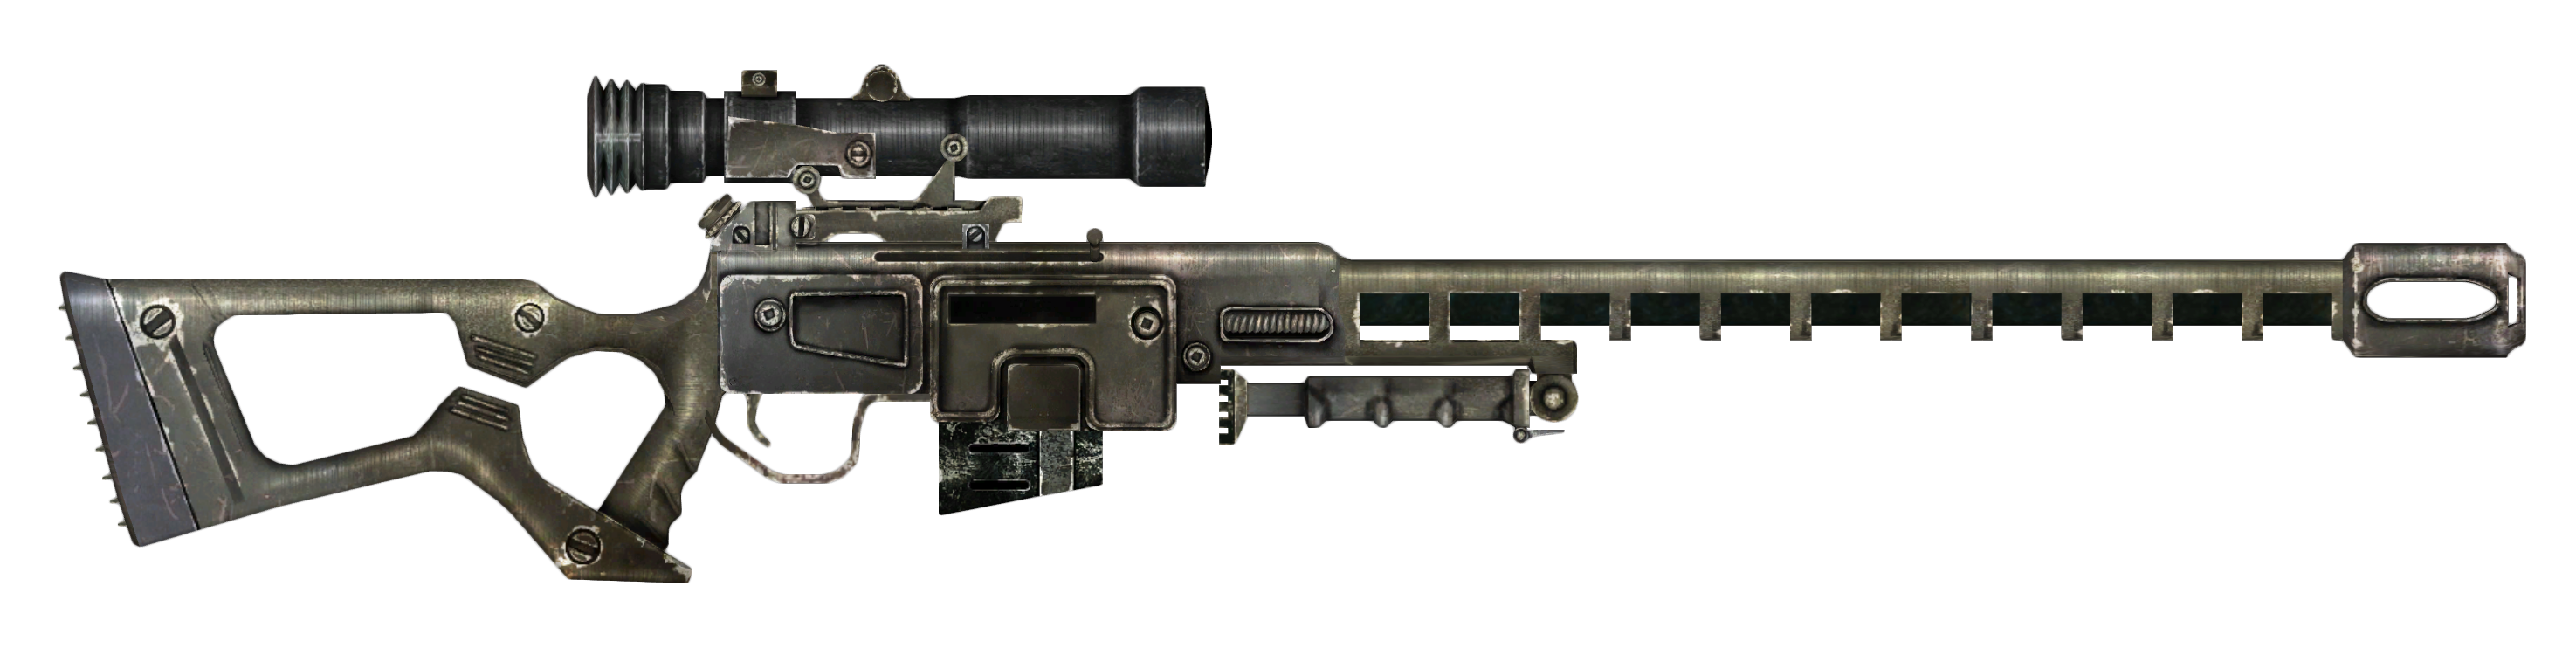 Mlg sniper png. Rifle fallout wiki fandom